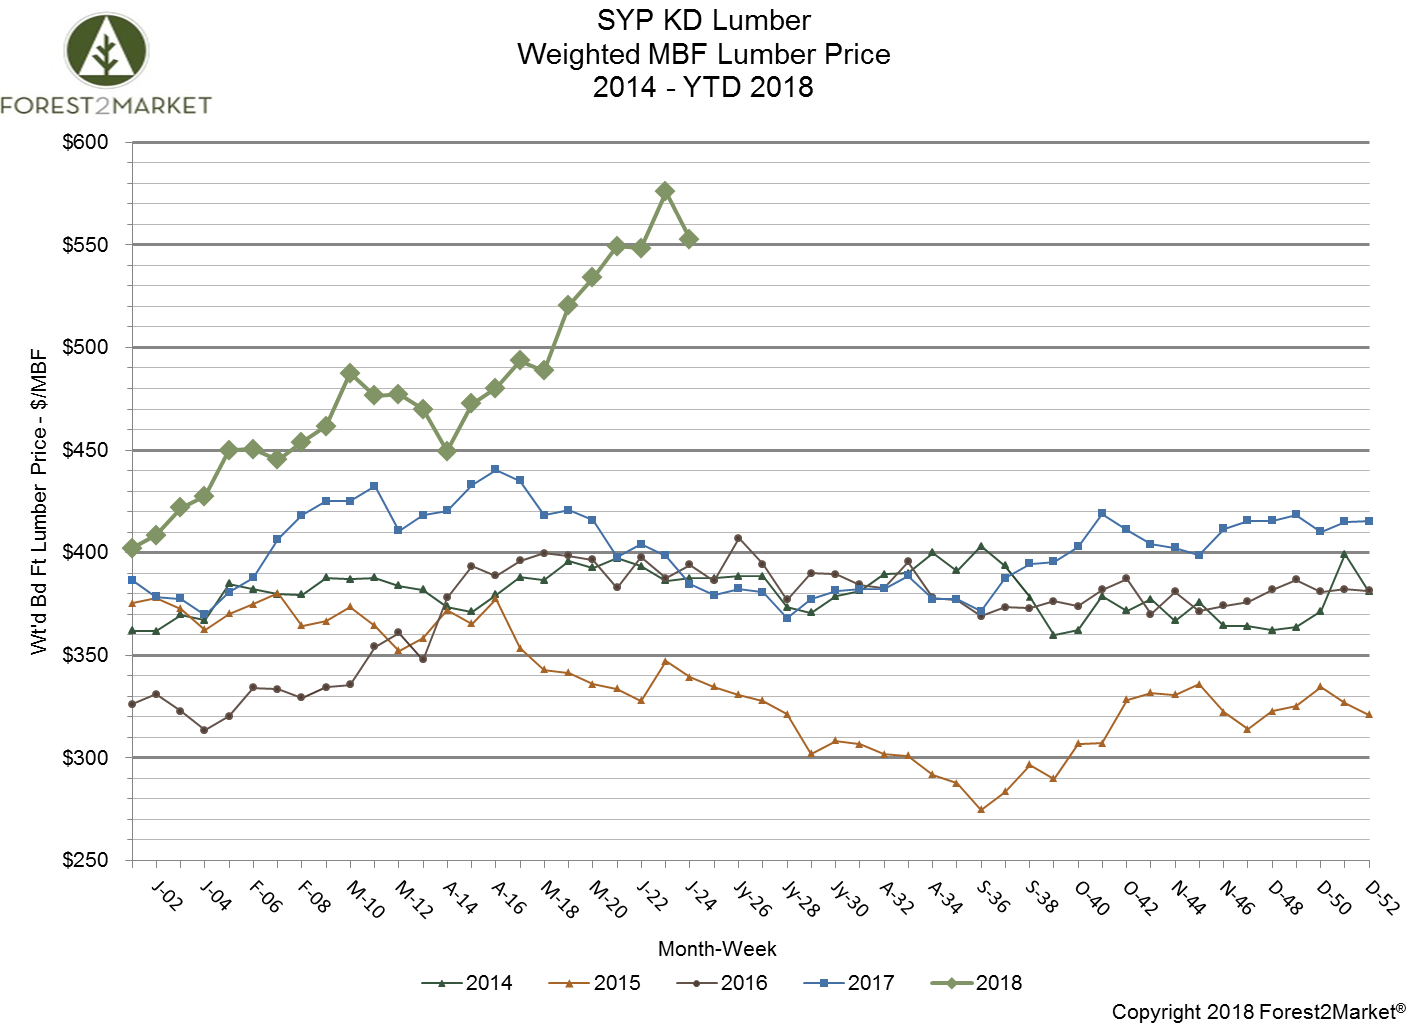 Southern Yellow Pine Lumber Prices Spike to Record High in June